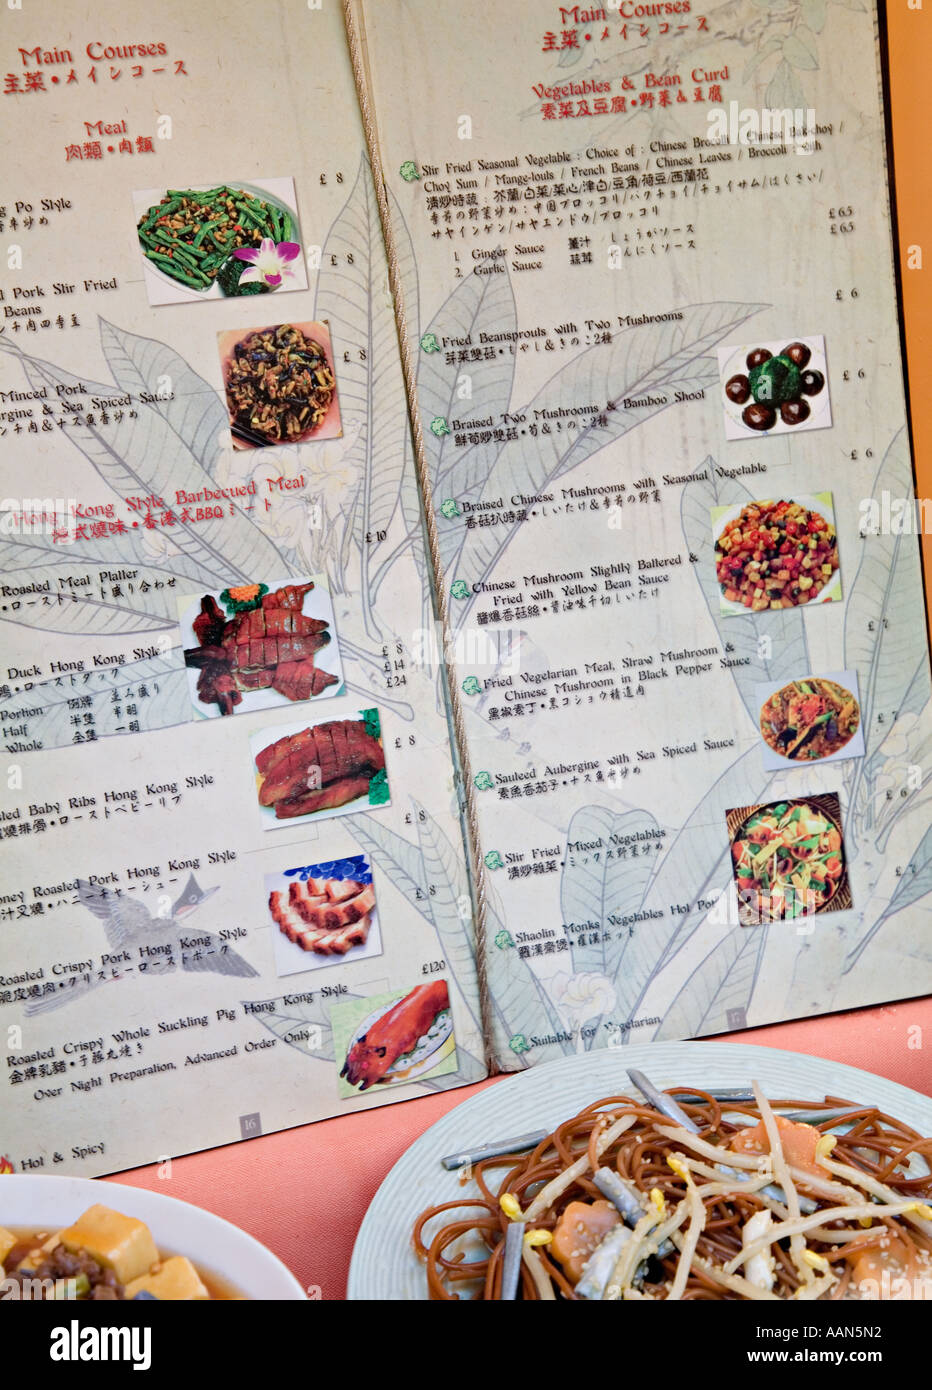 Chinese food menu stock photos chinese food menu stock images alamy bilingual chinese english menu with food on plates in restaurant cardiff bay wales uk stock forumfinder Choice Image